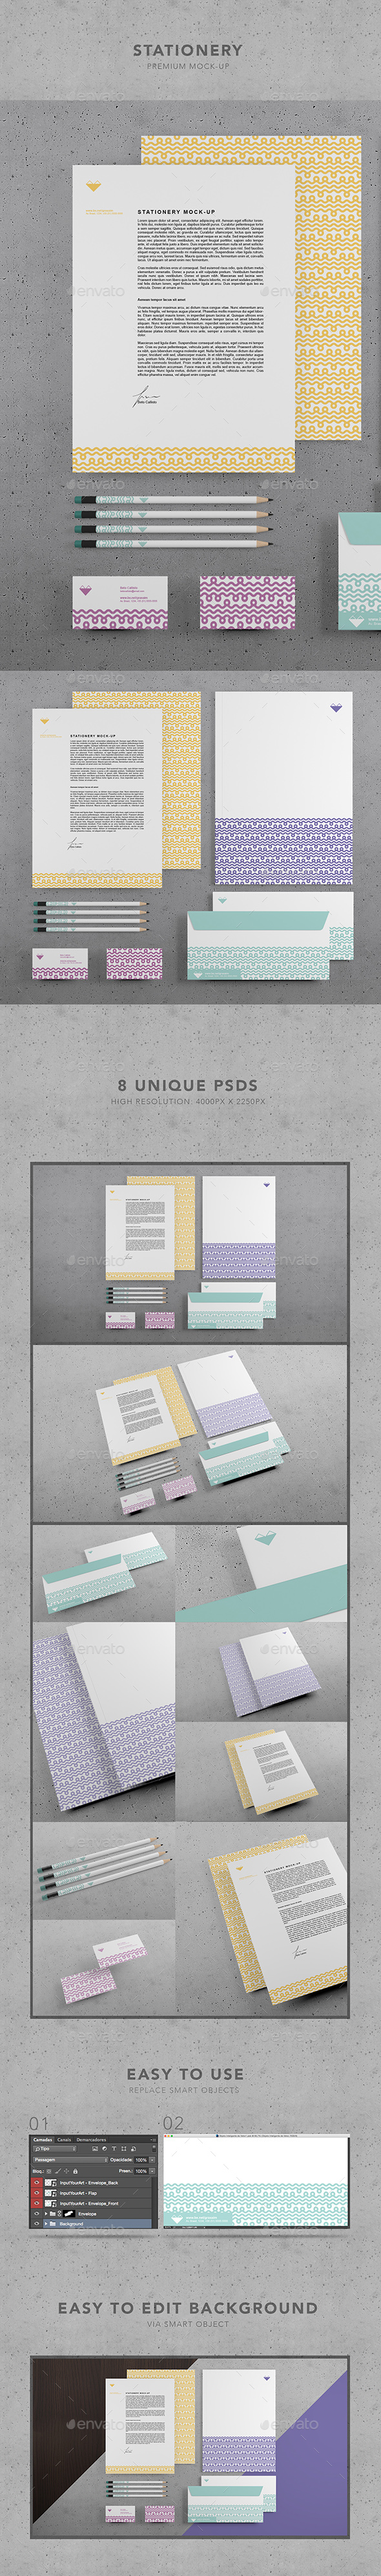 Restaurant Identity Branding Mock-up II (Stationery)